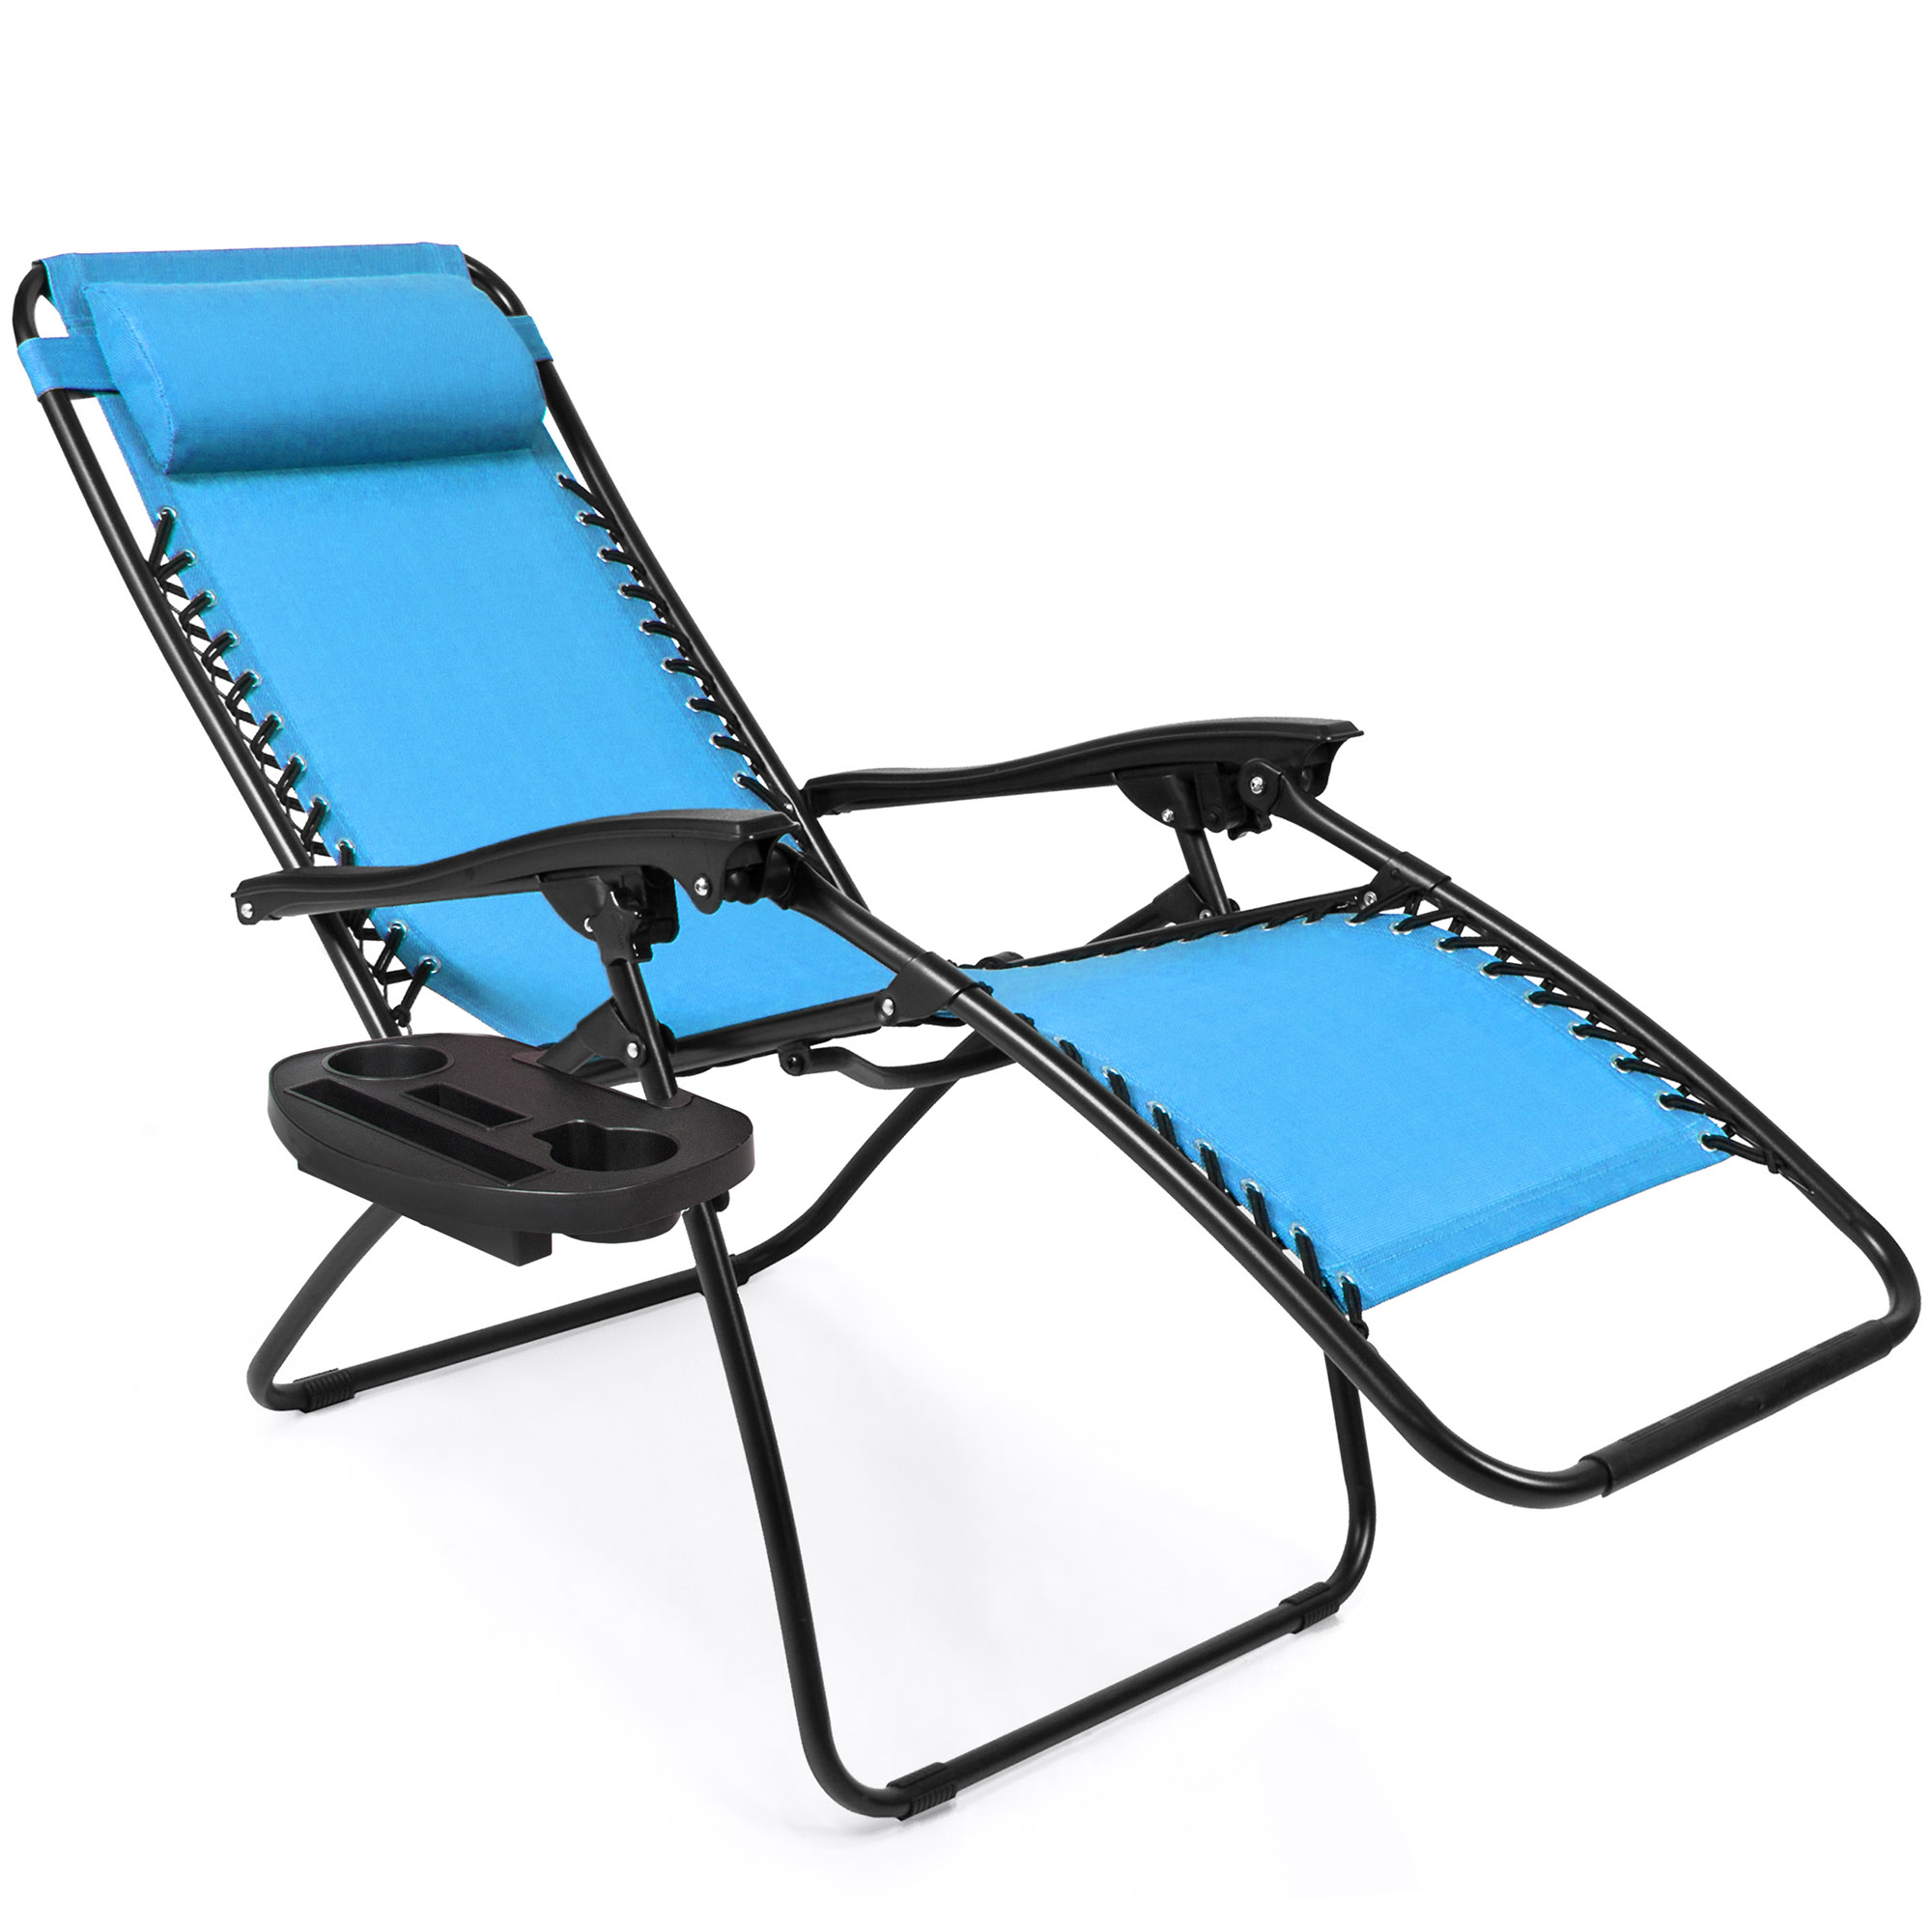 BCP-Set-of-2-Adjustable-Zero-Gravity-Patio-Chair-Recliners-w-Cup-Holders thumbnail 25